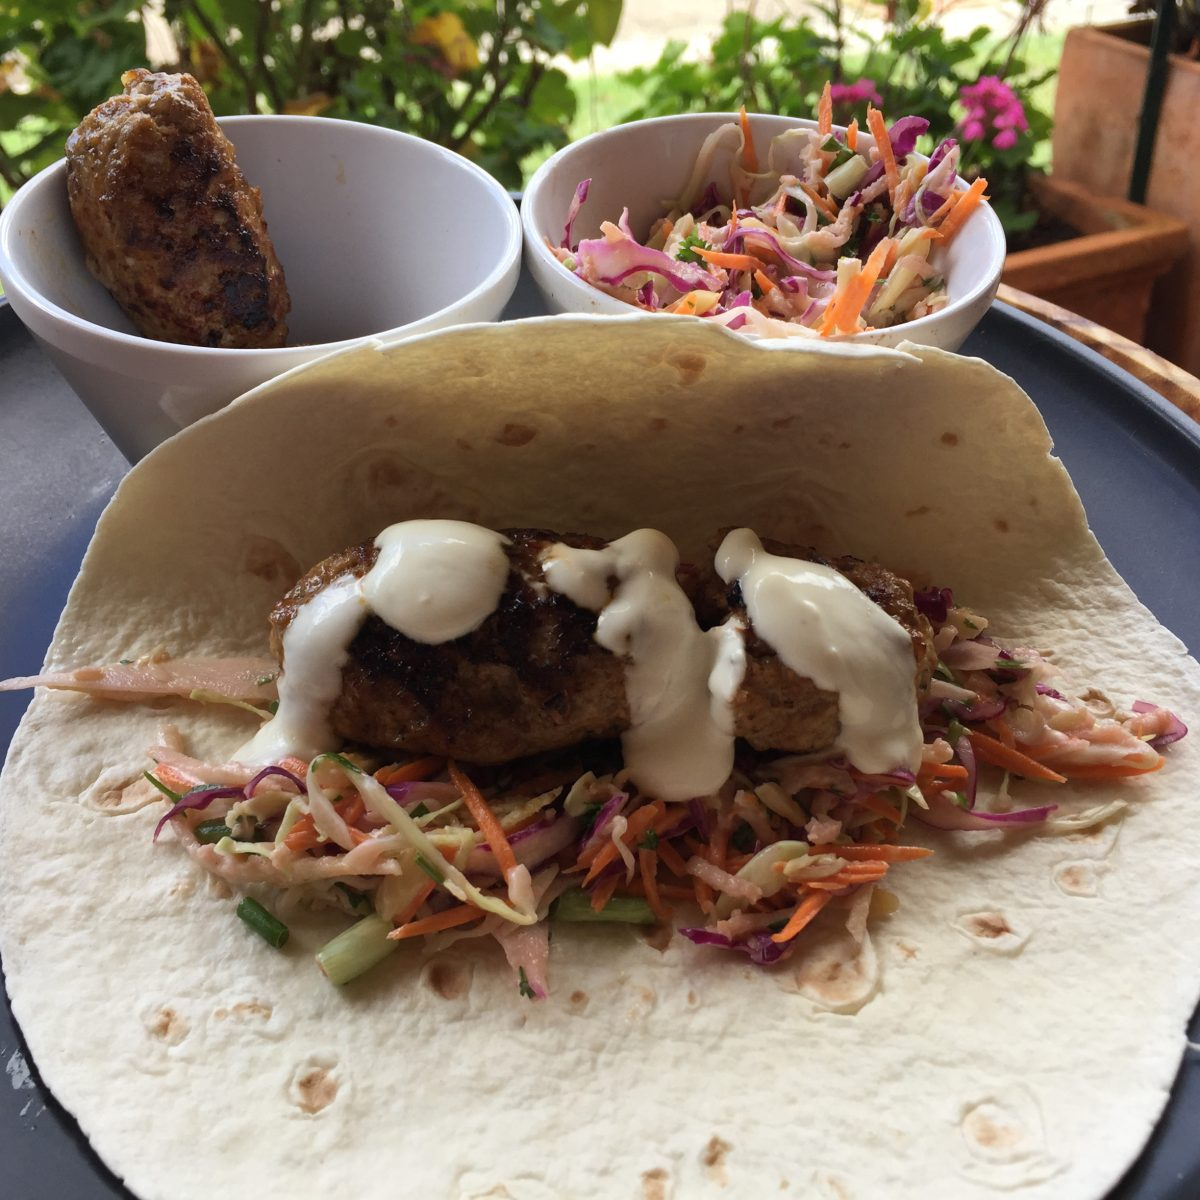 A tortilla wrap filled with a delicious rainbow apple slaw and a tasty pork kofta drizzled with aioli by cookingmealsforone.com